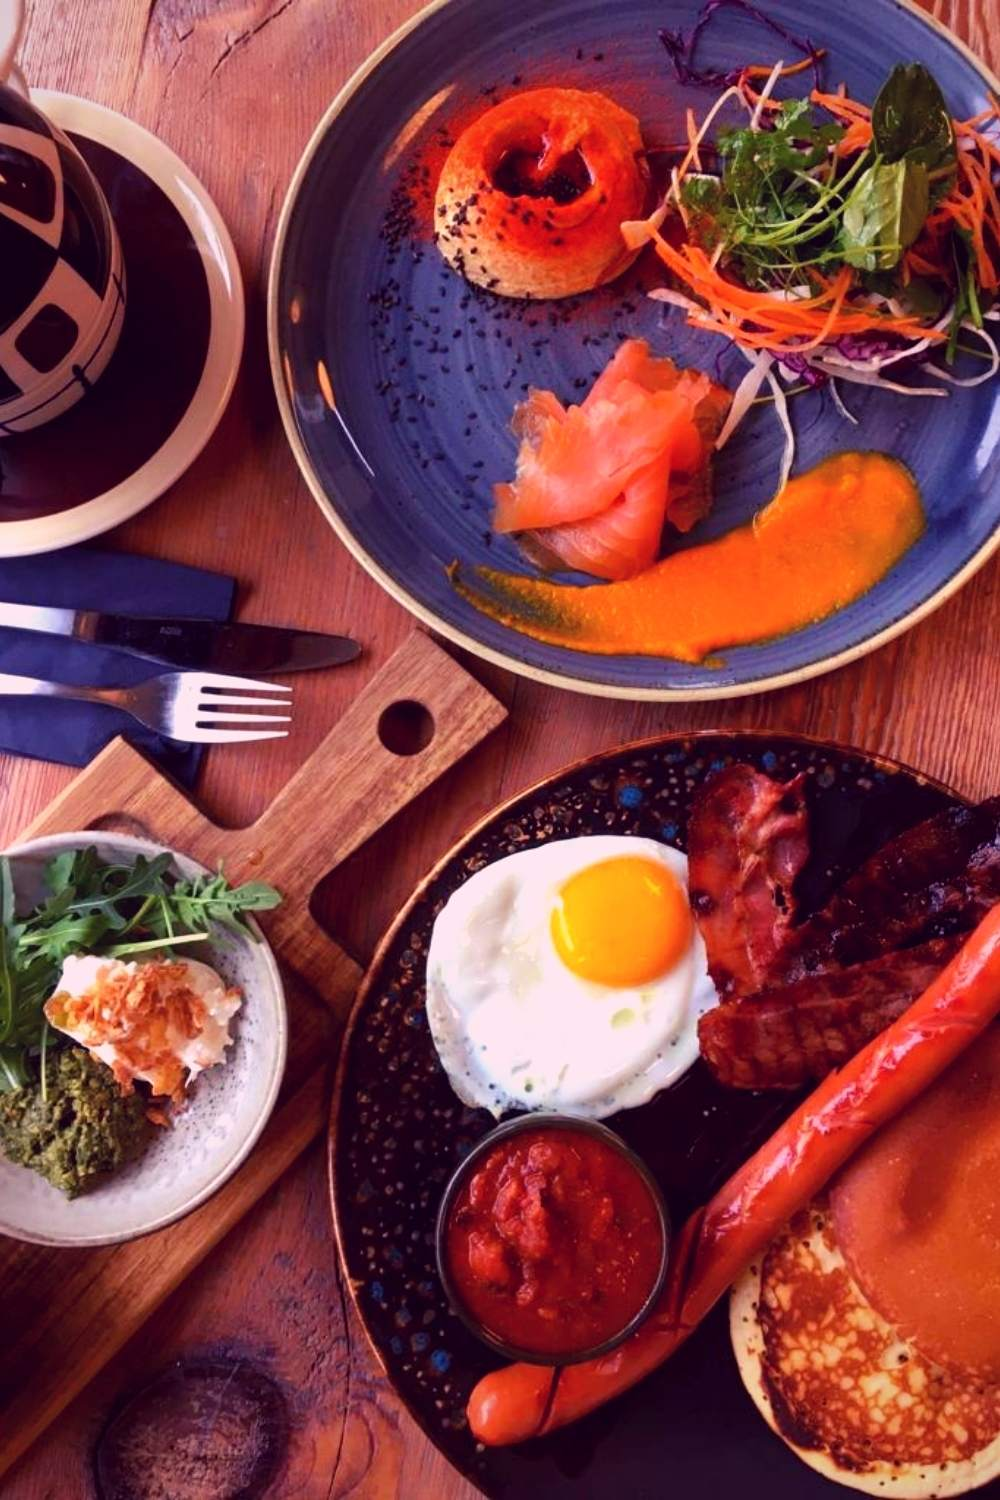 5 HOT BREAKFASTS AND BRUNCHES TO BE DELIVERED IN BED